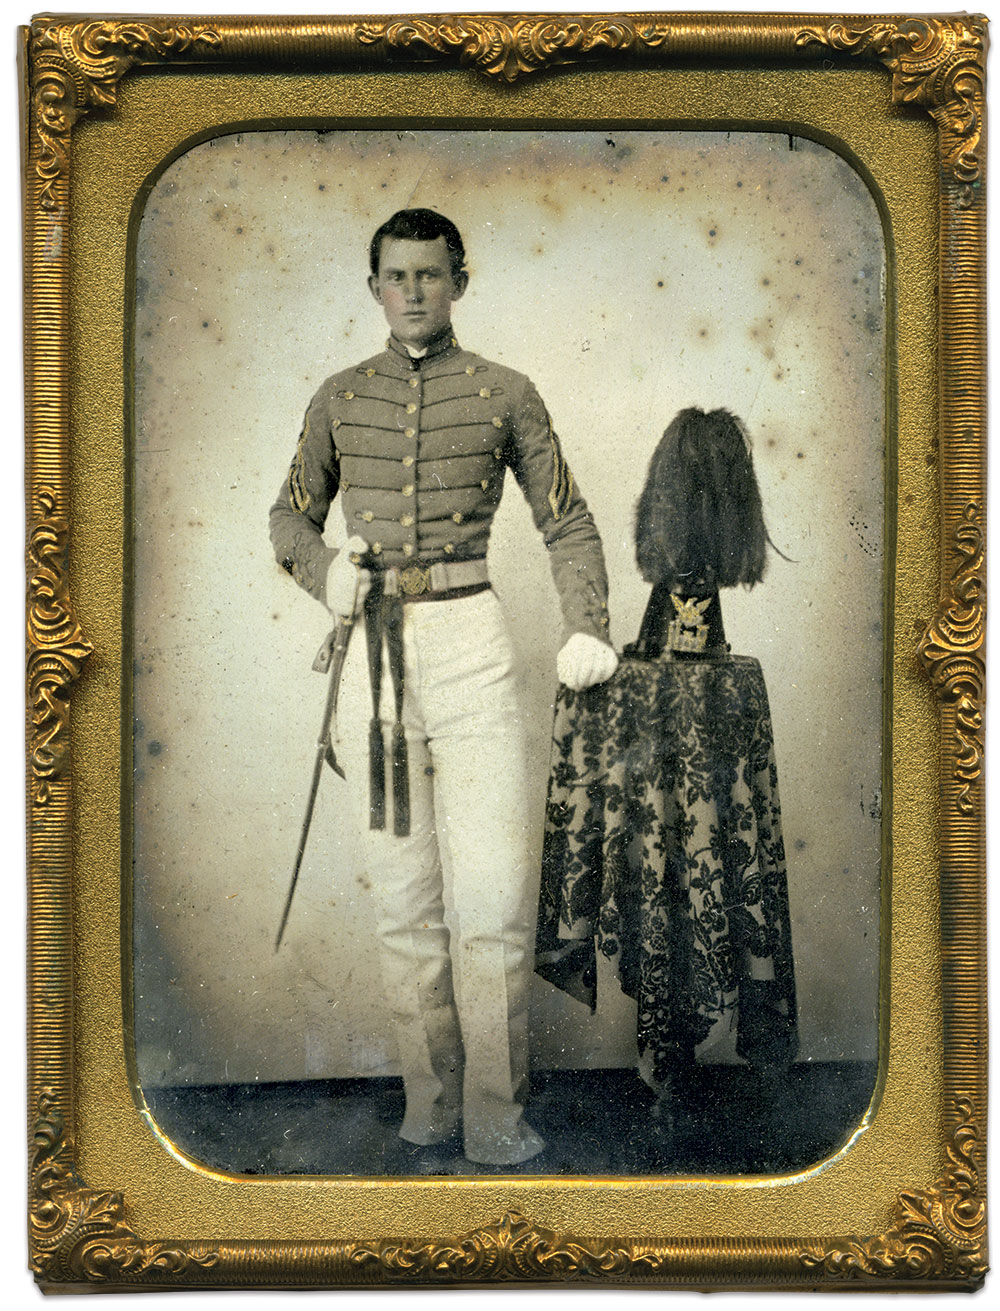 Burgwyn stands in his dress cadet uniform.Quarter-plate ambrotype from the Dave Batalo Collection.